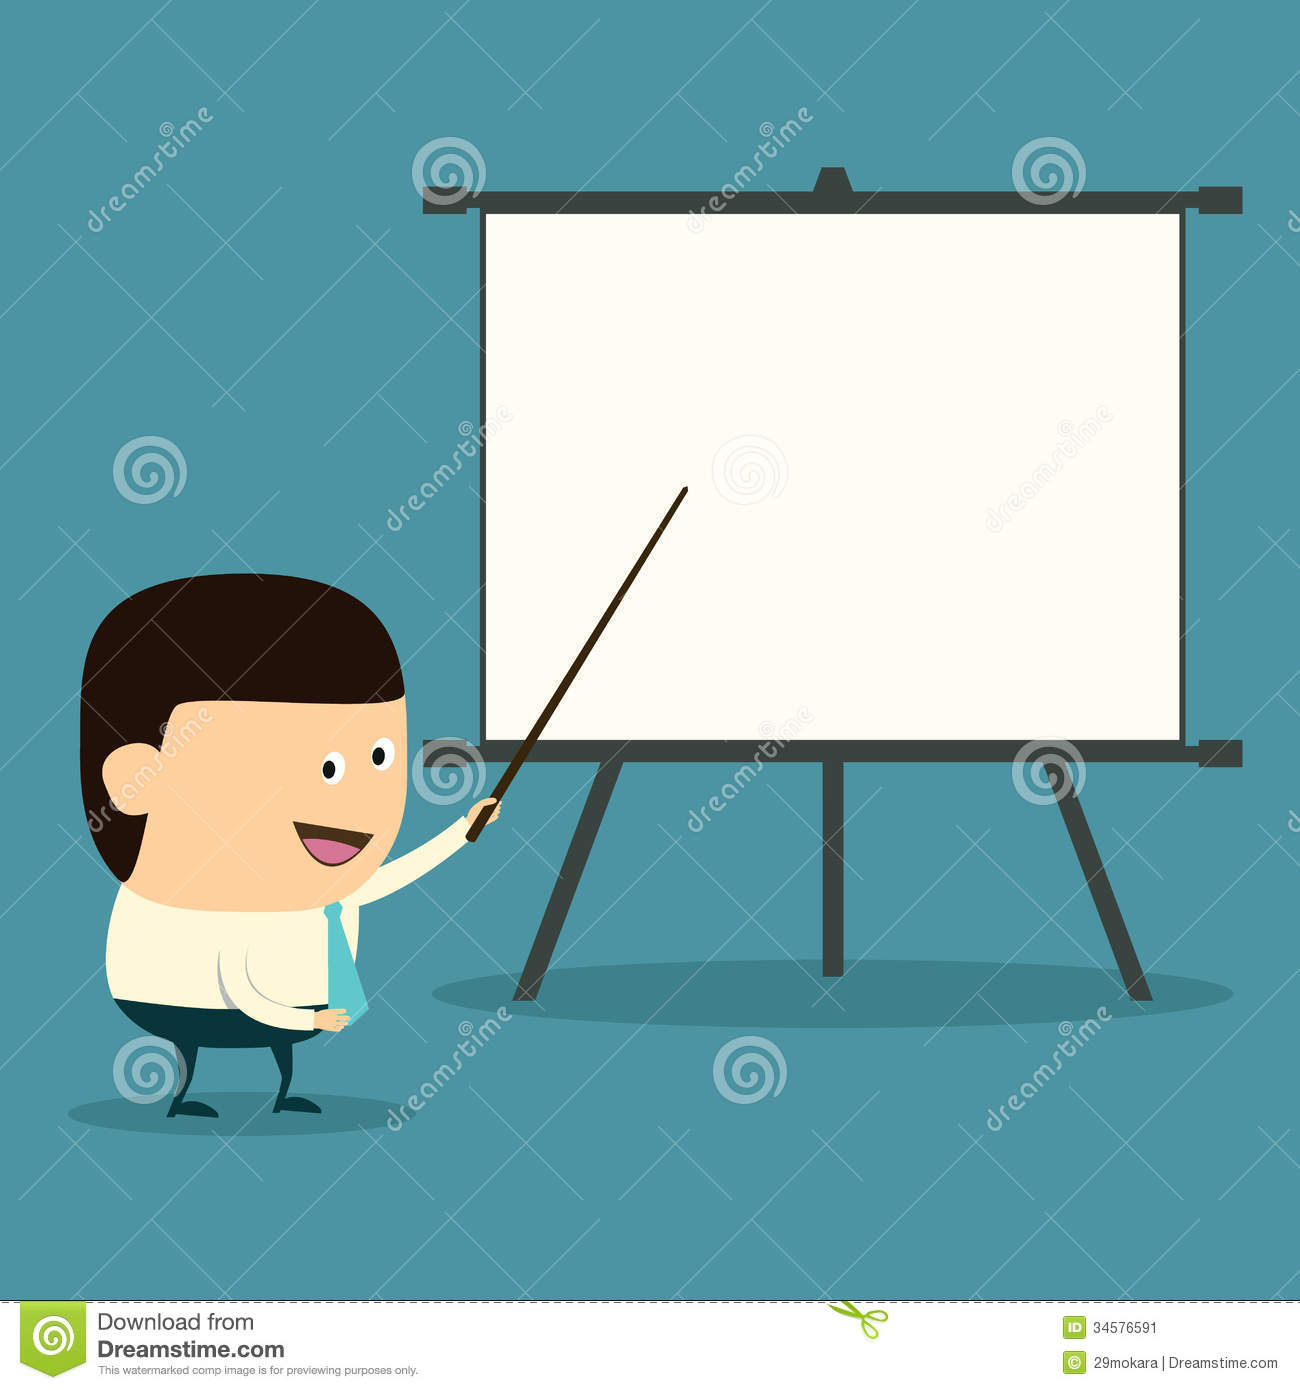 Cartoon business presentation stock illustration illustration of.